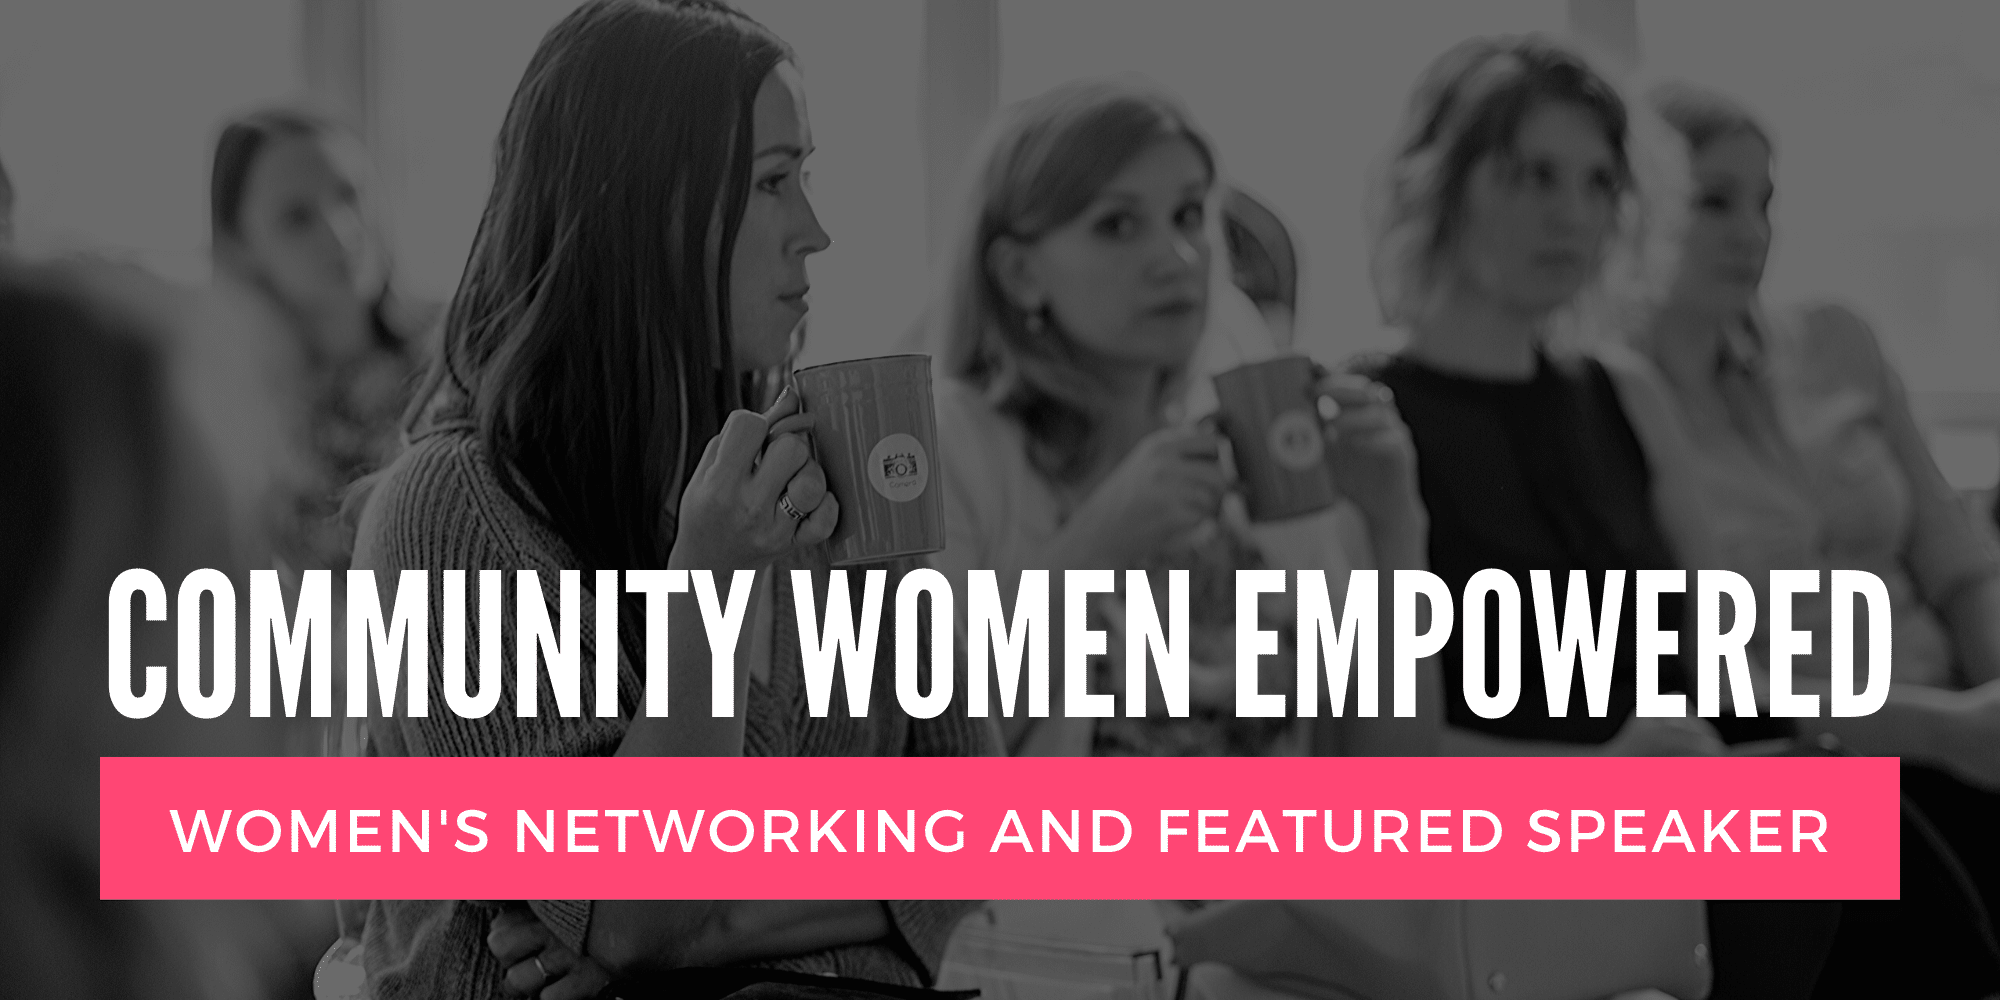 Community Women Empowered Through Learning